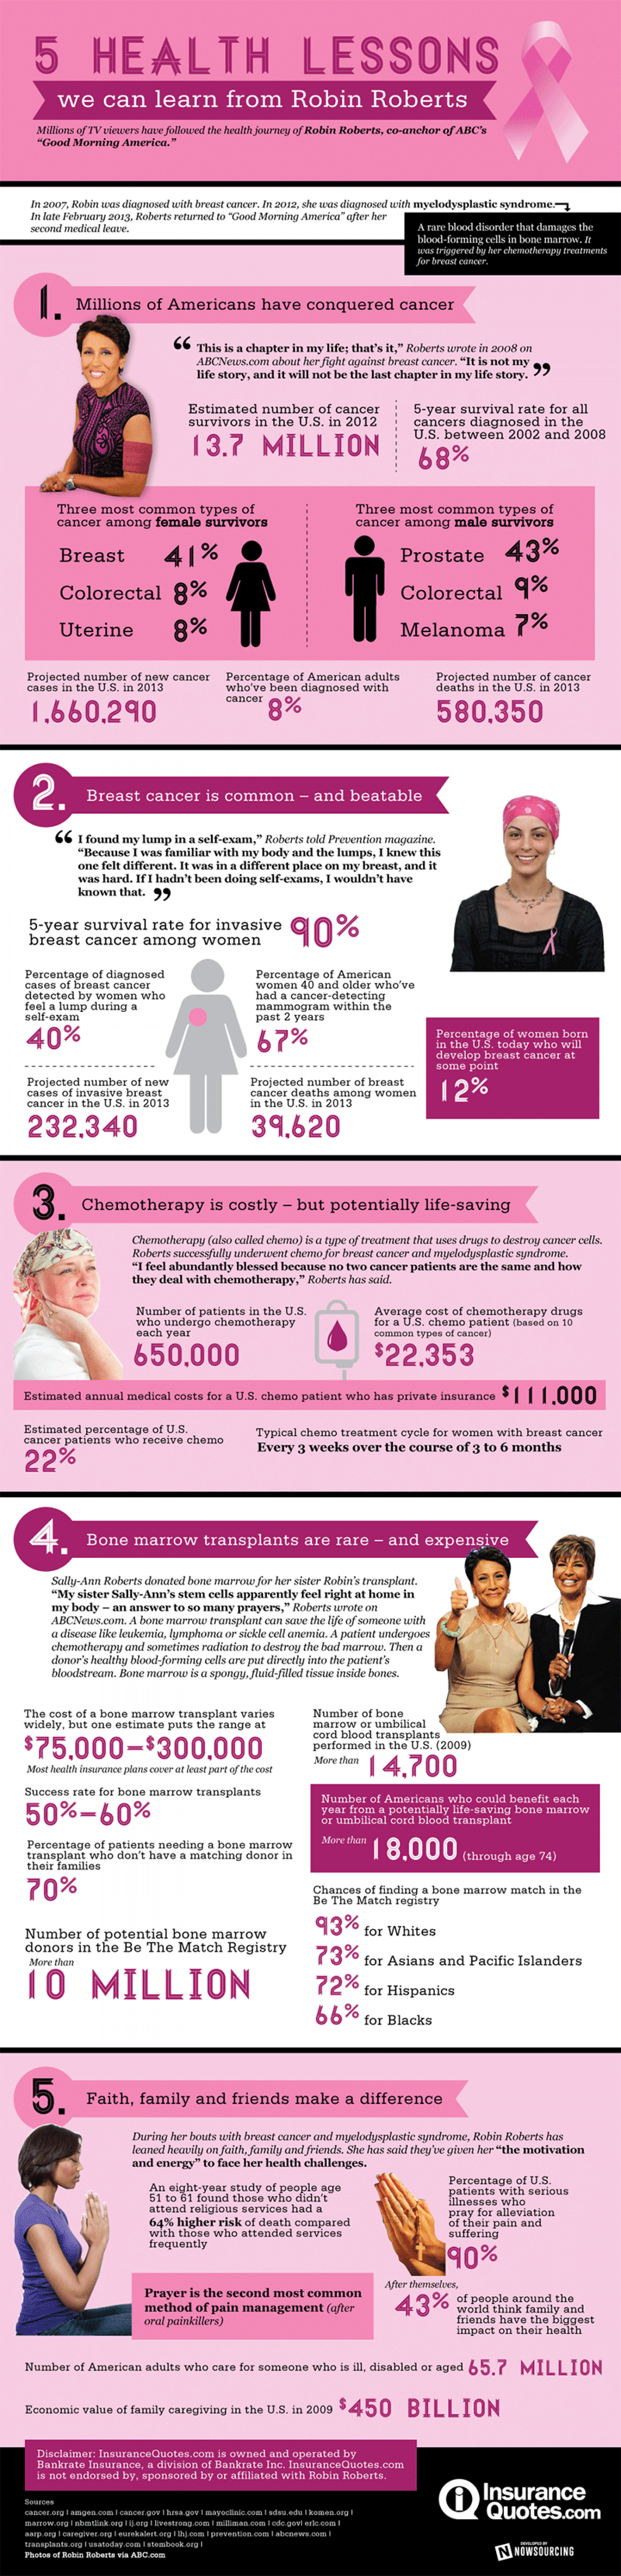 5 Health Lessons We Can Learn From Robin Roberts Infographic